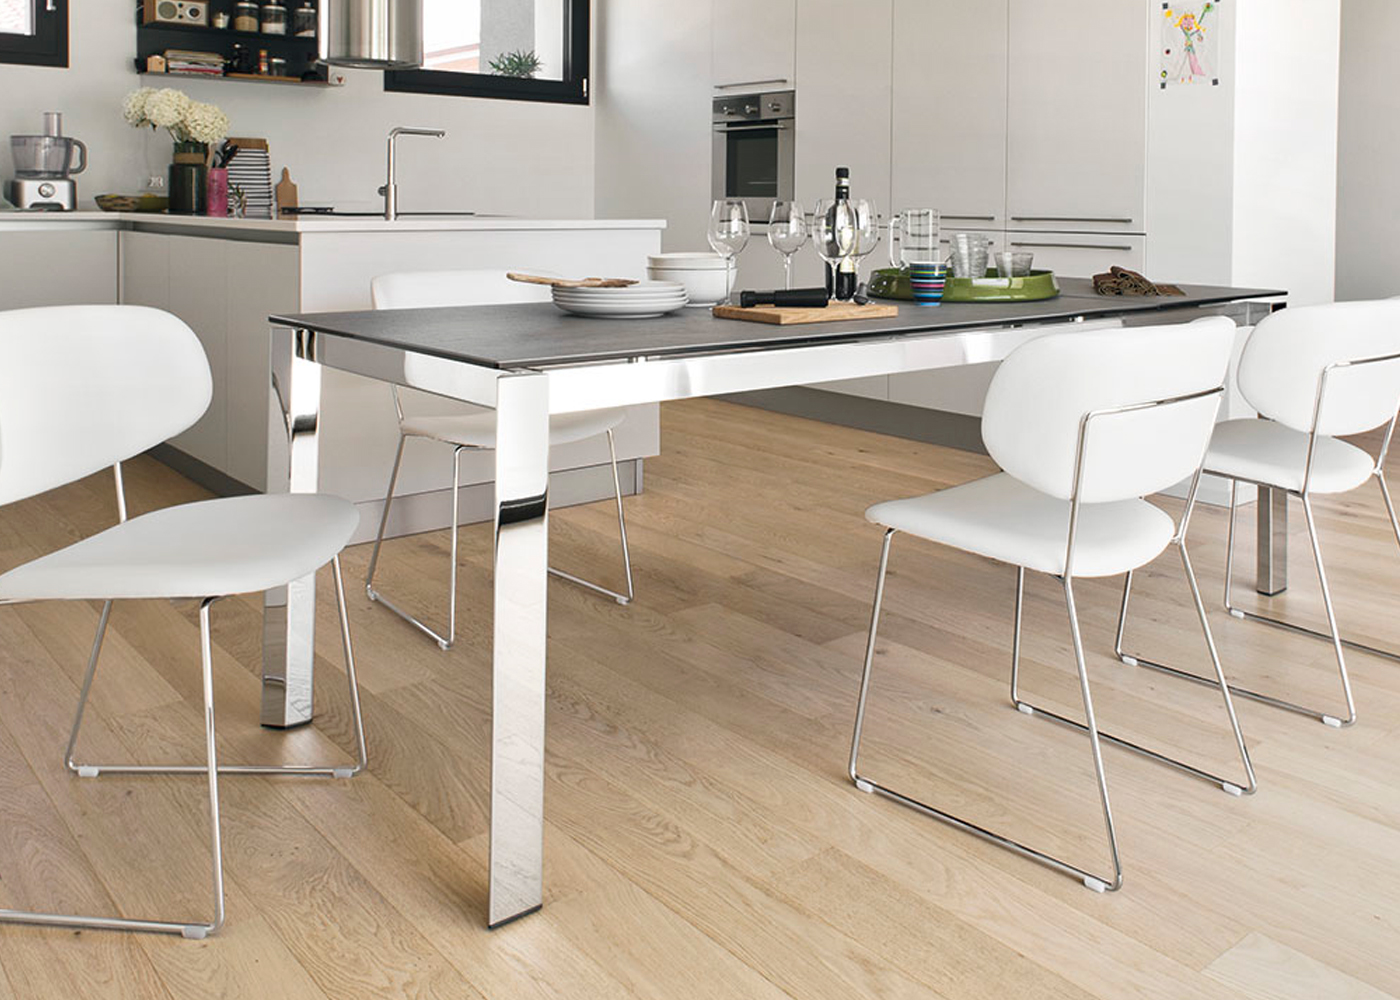 Calligaris Duca Table Midfurn Furniture Superstore